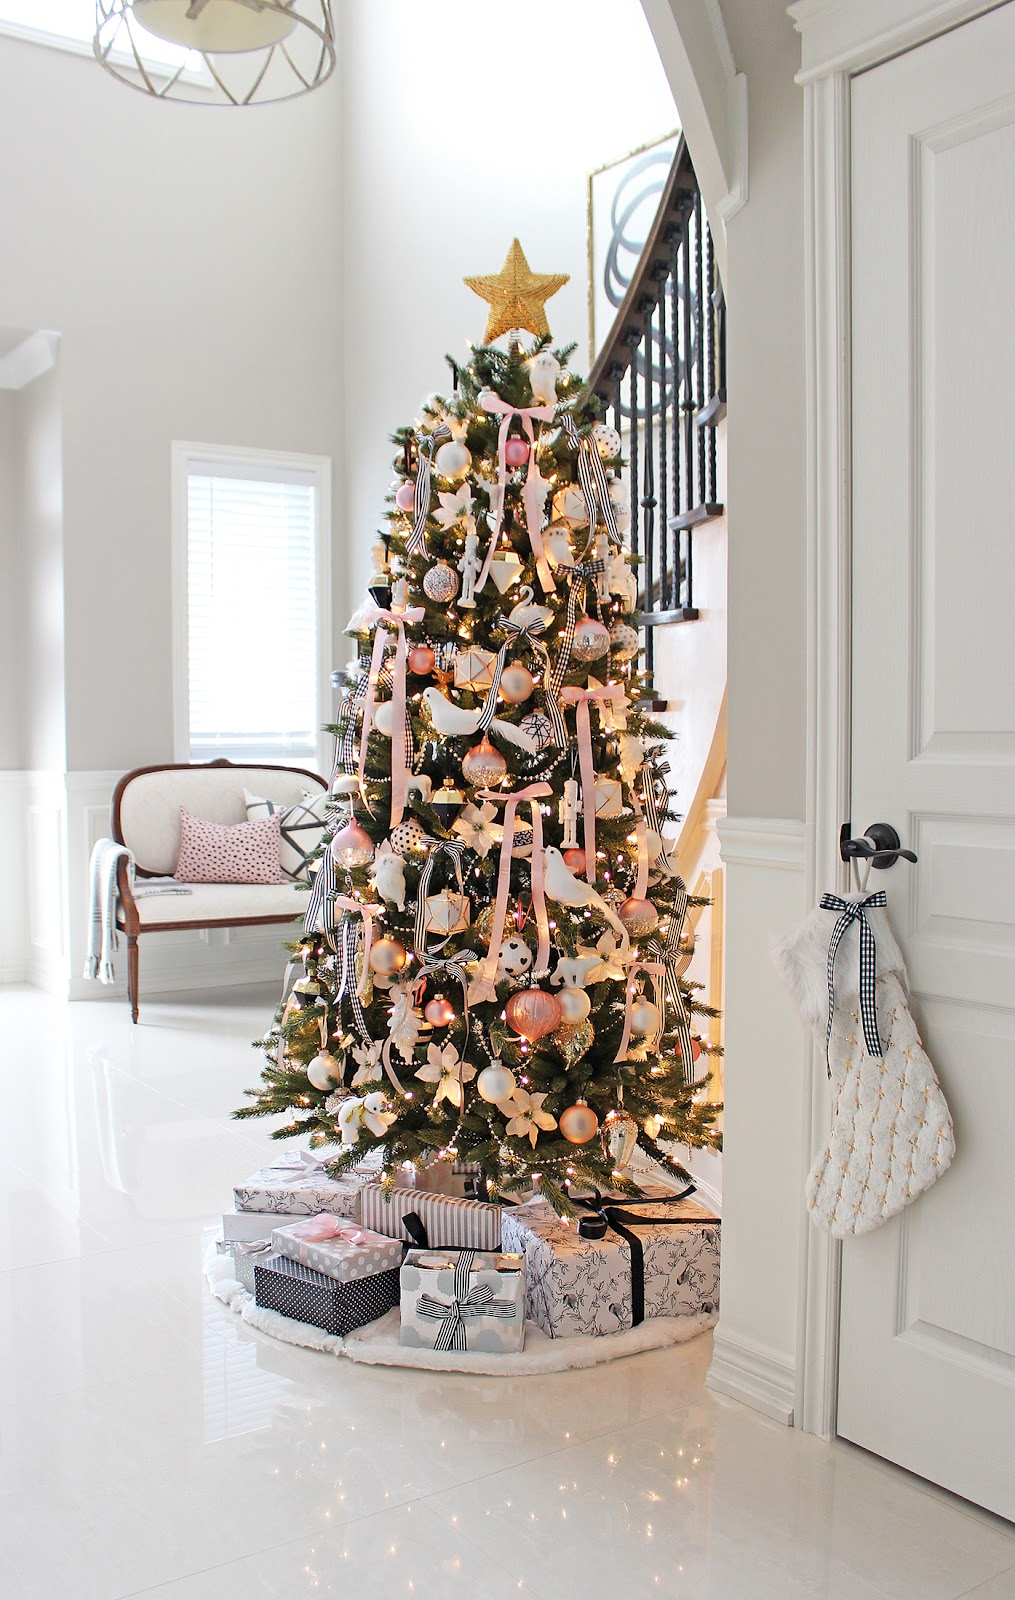 Am dolce vita december 2016 and heres our 2016 christmas tree standing tall and happy in our foyer solutioingenieria Choice Image